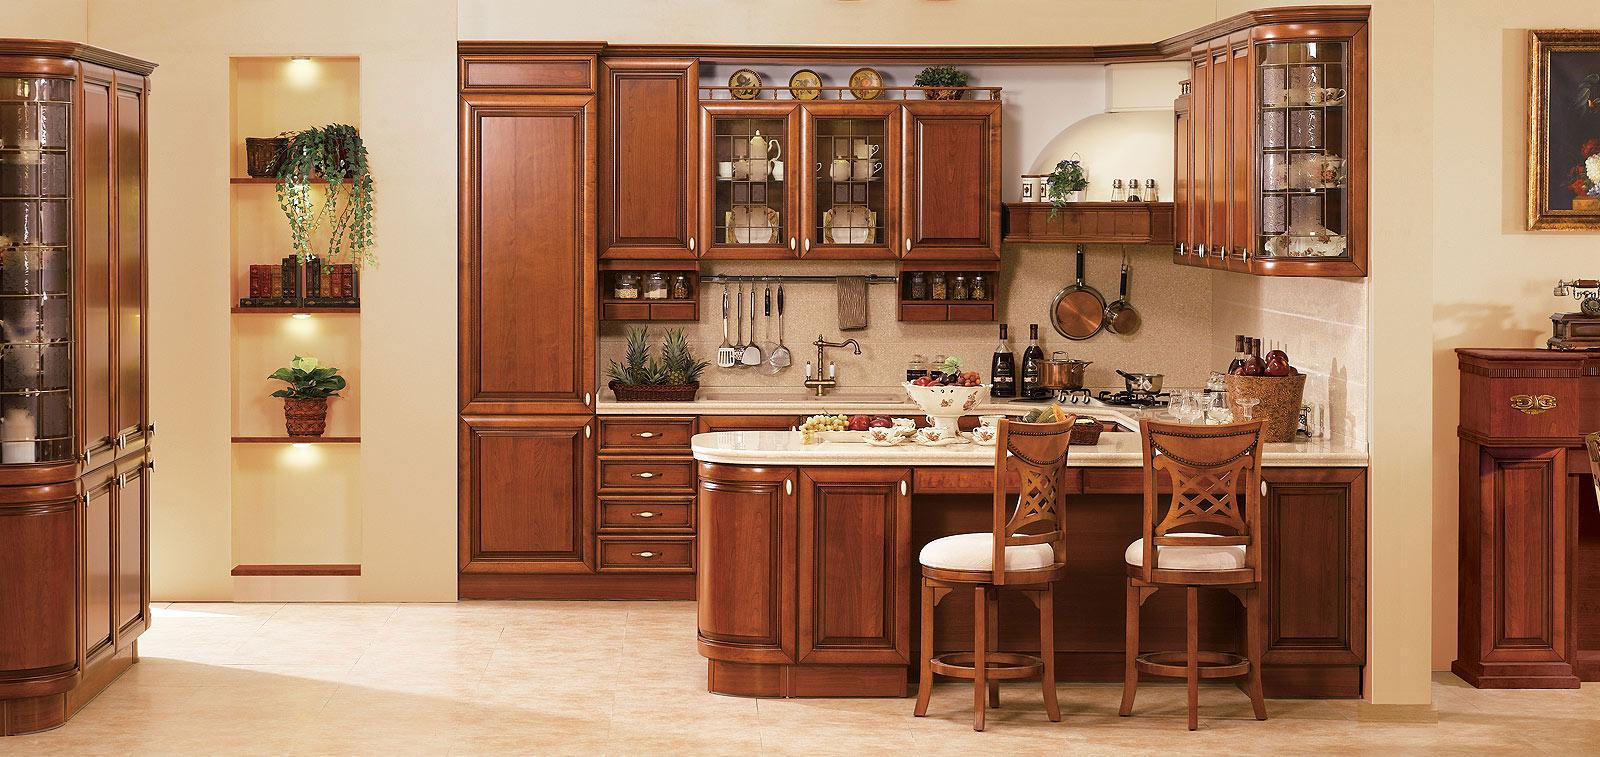 Indian Kitchen Designs. Source